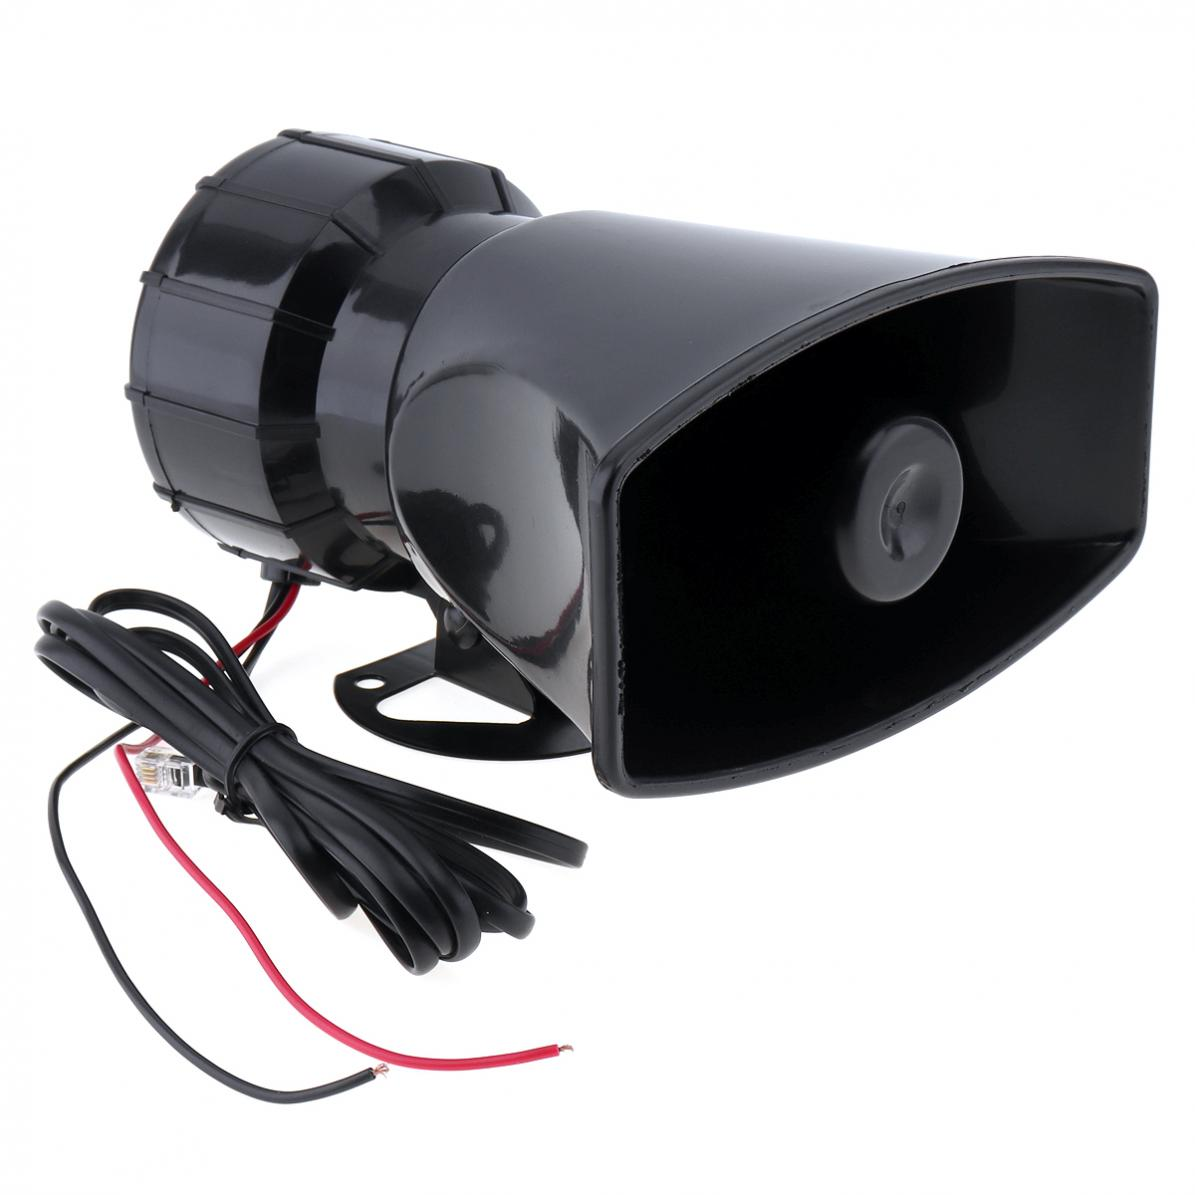 100W 12V 3 Sound Car Emergency Siren Car Siren Air Horn Mic PA Speaker Electronic Warning Alarm Ambulance Amplifier Hooter in Multi tone Claxon Horns from Automobiles Motorcycles